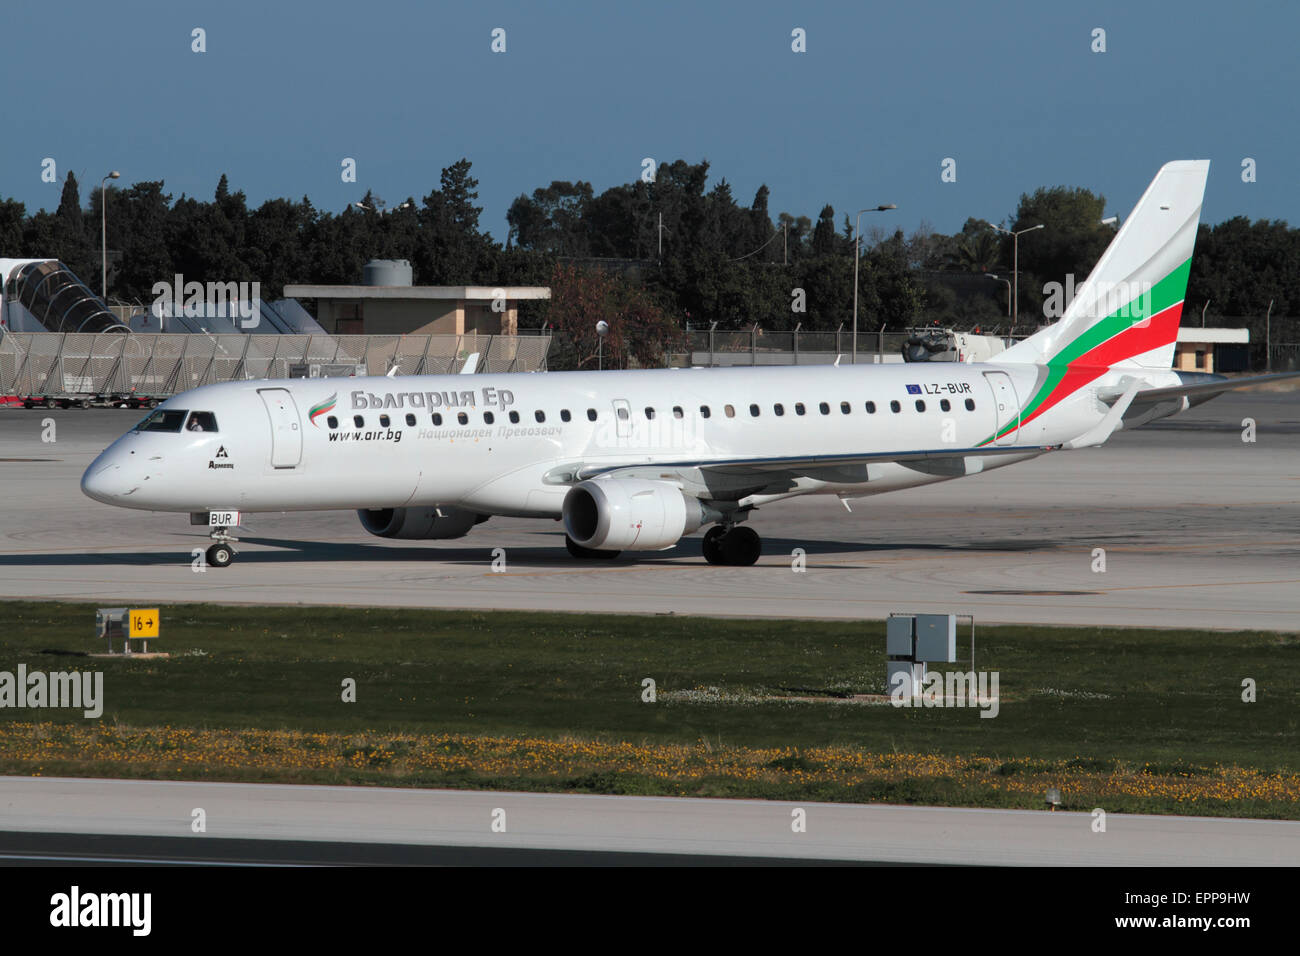 Bulgaria Air Embraer 190 regional jet plane or small airliner taxiing for departure. Commercial aviation and air - Stock Image